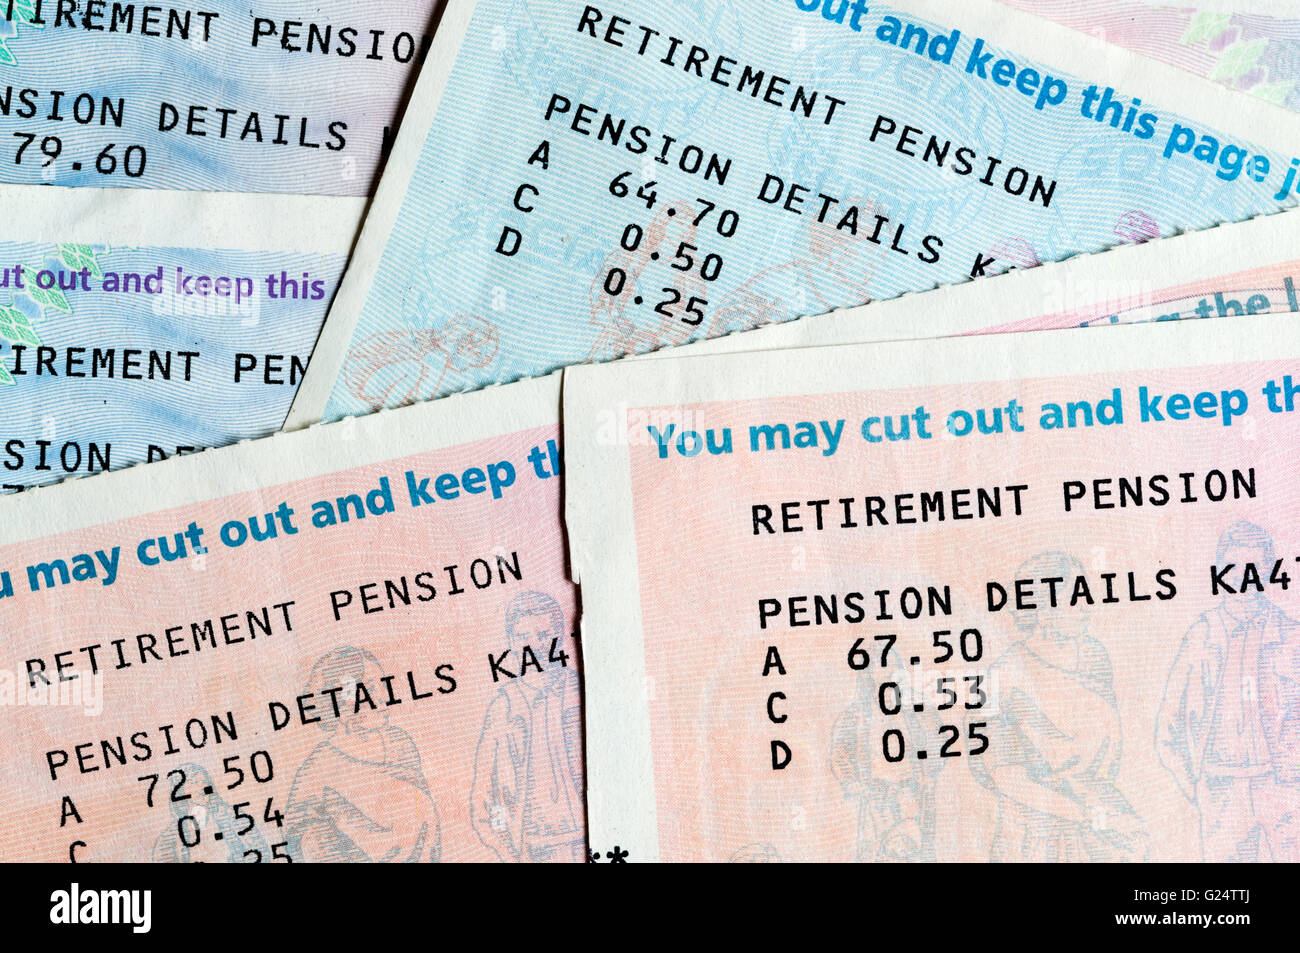 UK retirement pension details. - Stock Image